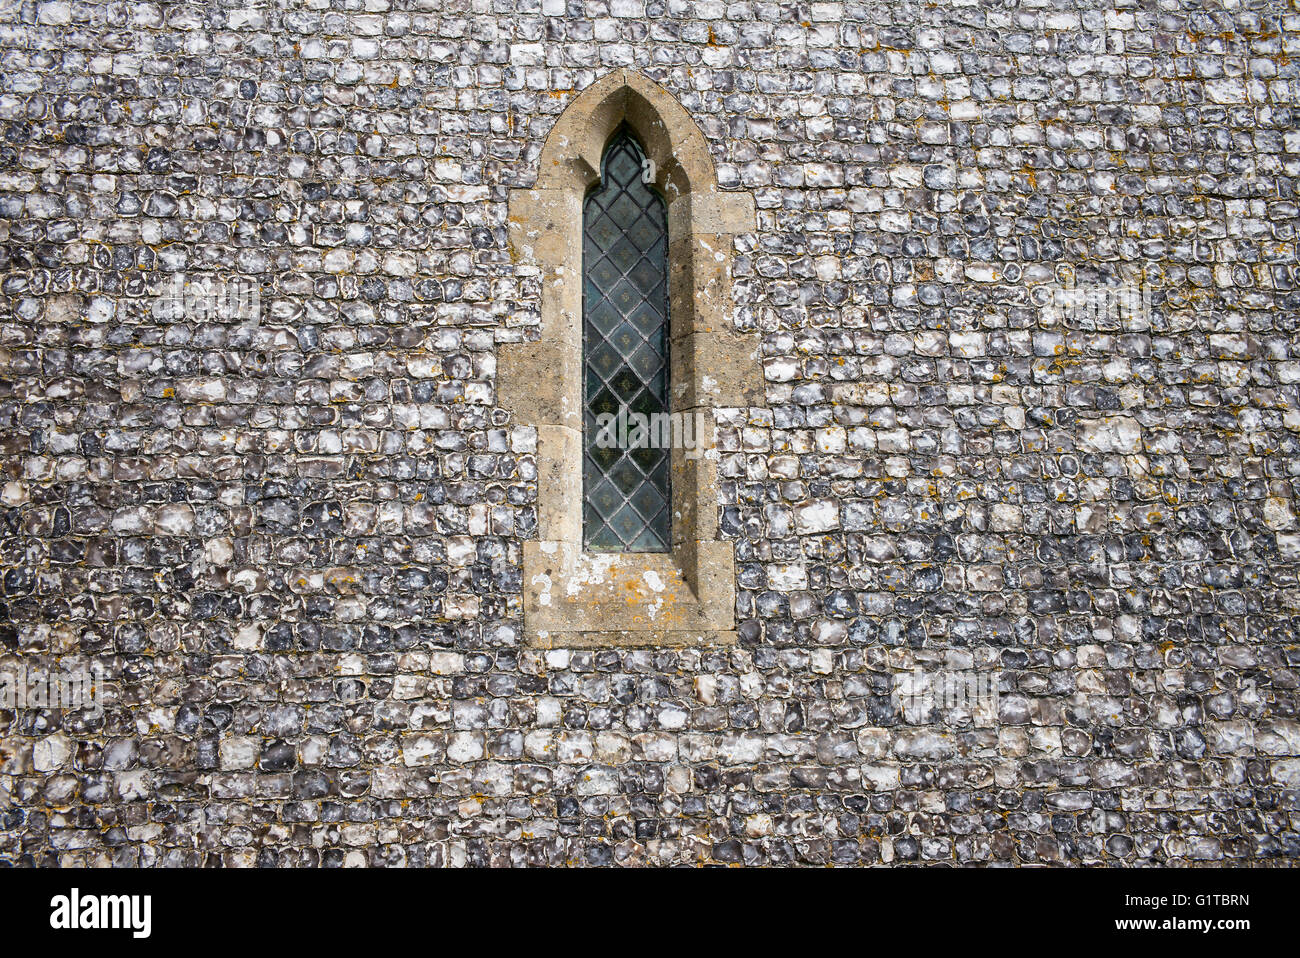 Vernacular architecture using flint stone for the walls and quarry stone window surrounds of St James's Church, - Stock Image